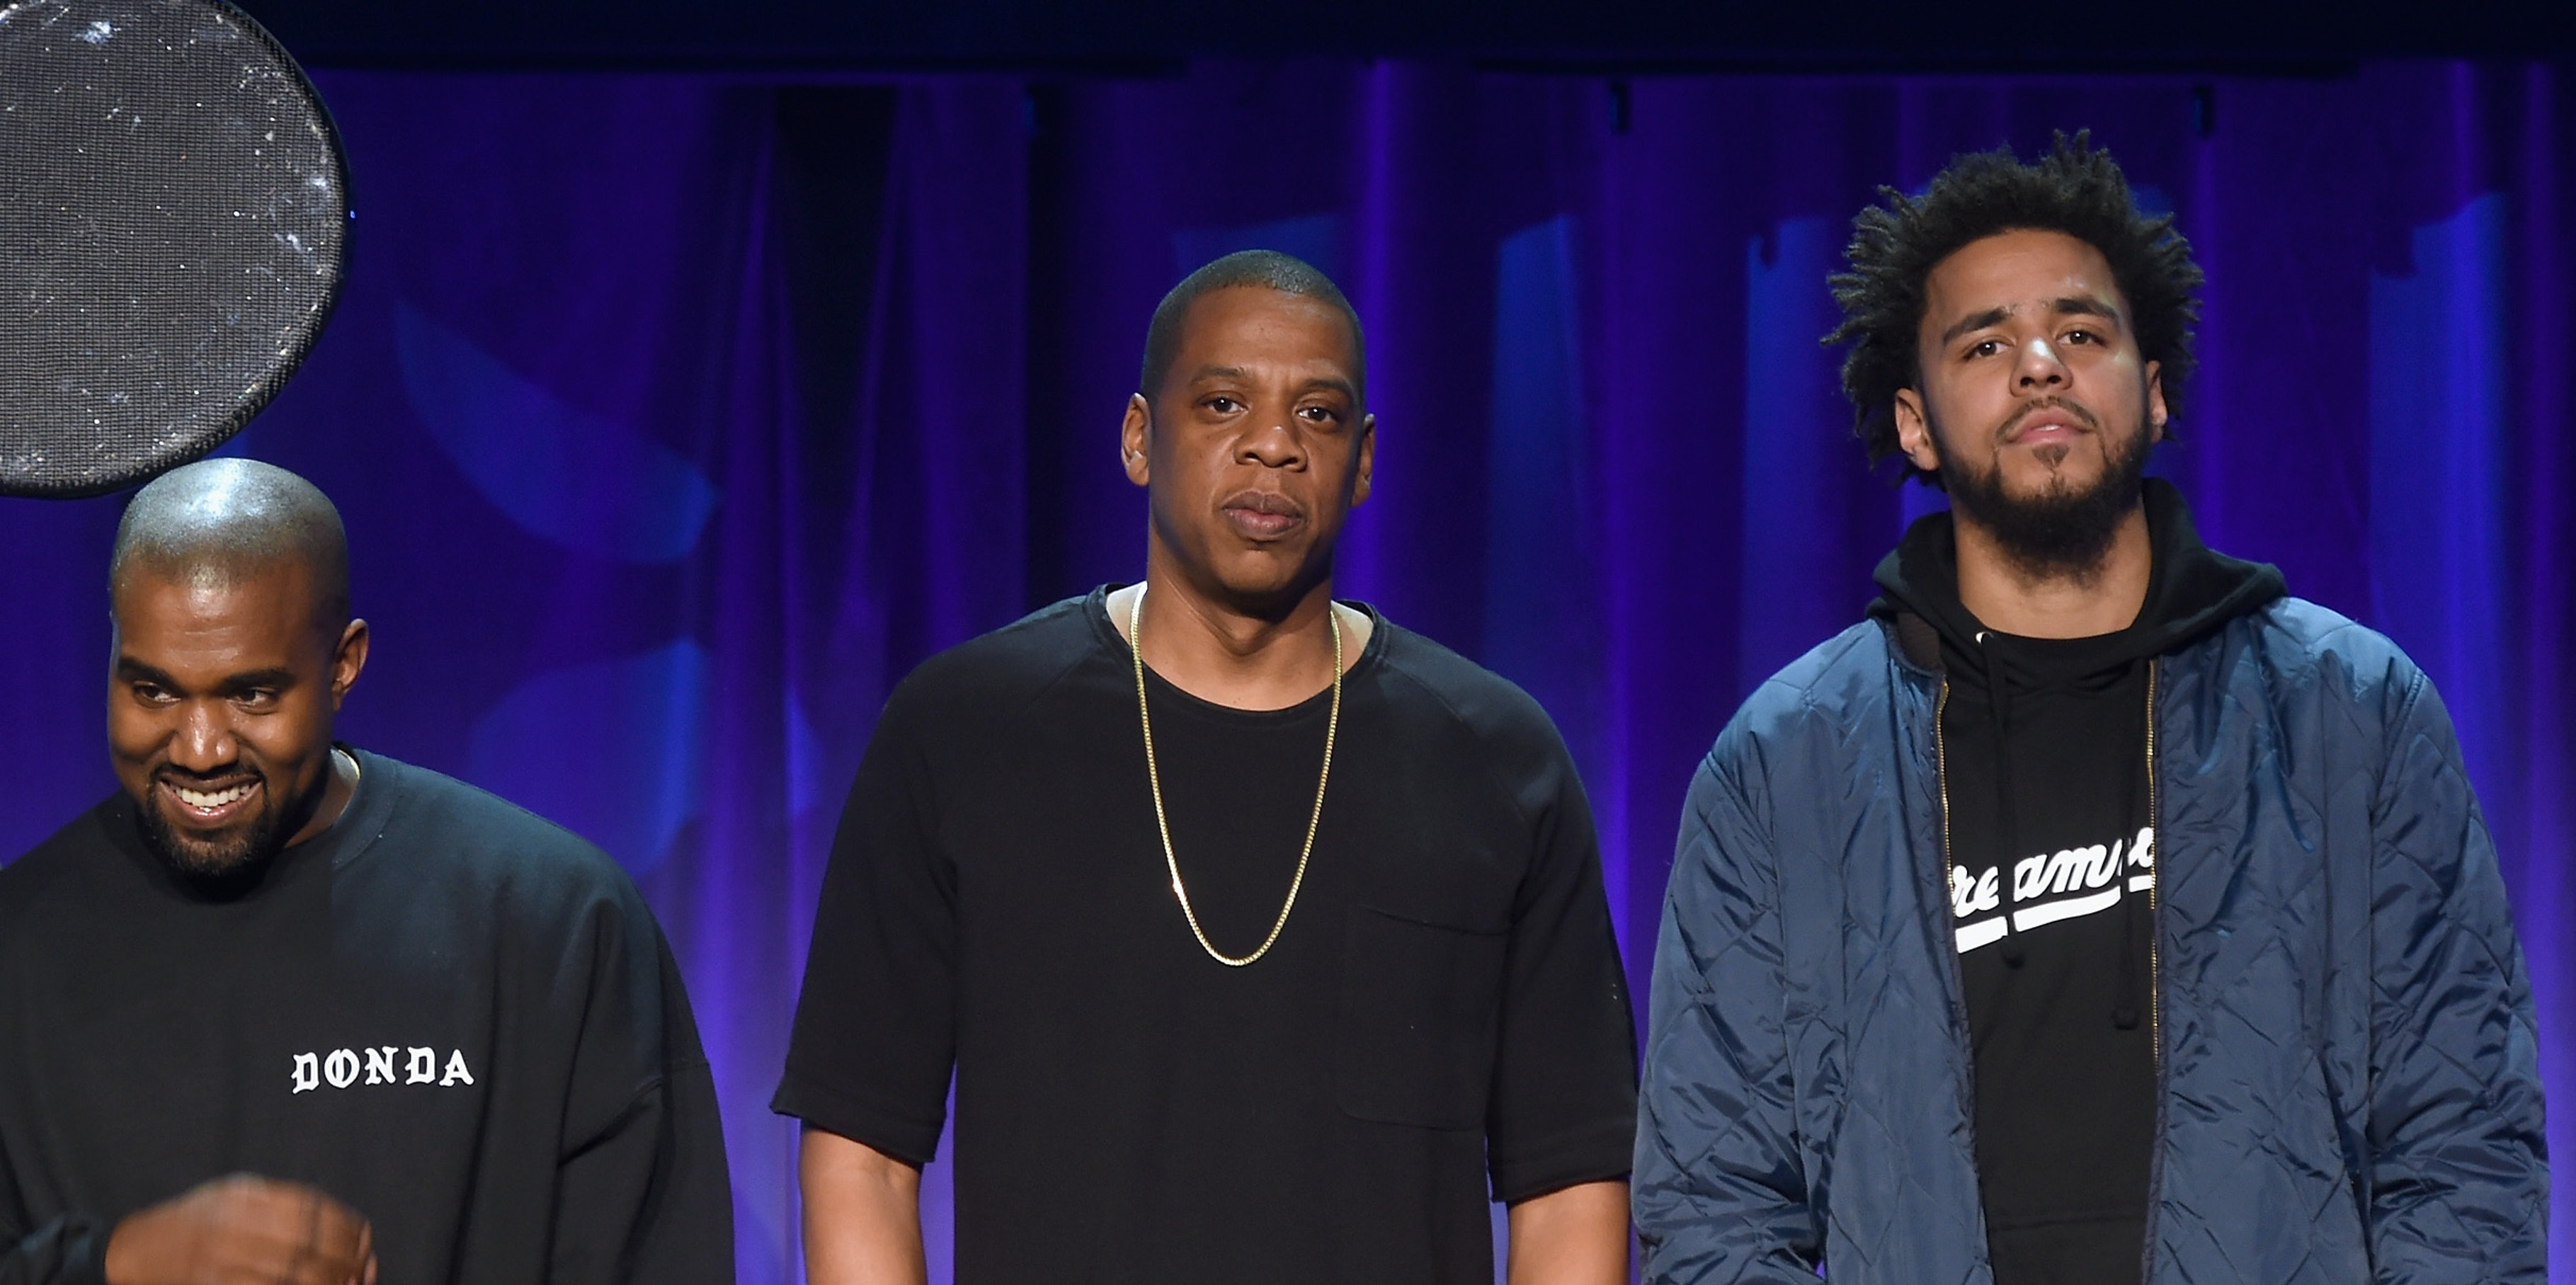 NEW YORK, NY - MARCH 30:  (L-R) Deadmau5, Kanye West, JAY Z and J. Cole onstage at the Tidal launch event #TIDALforALL at Skylight at Moynihan Station on March 30, 2015 in New York City.  (Photo by Jamie McCarthy/Getty Images for Roc Nation)